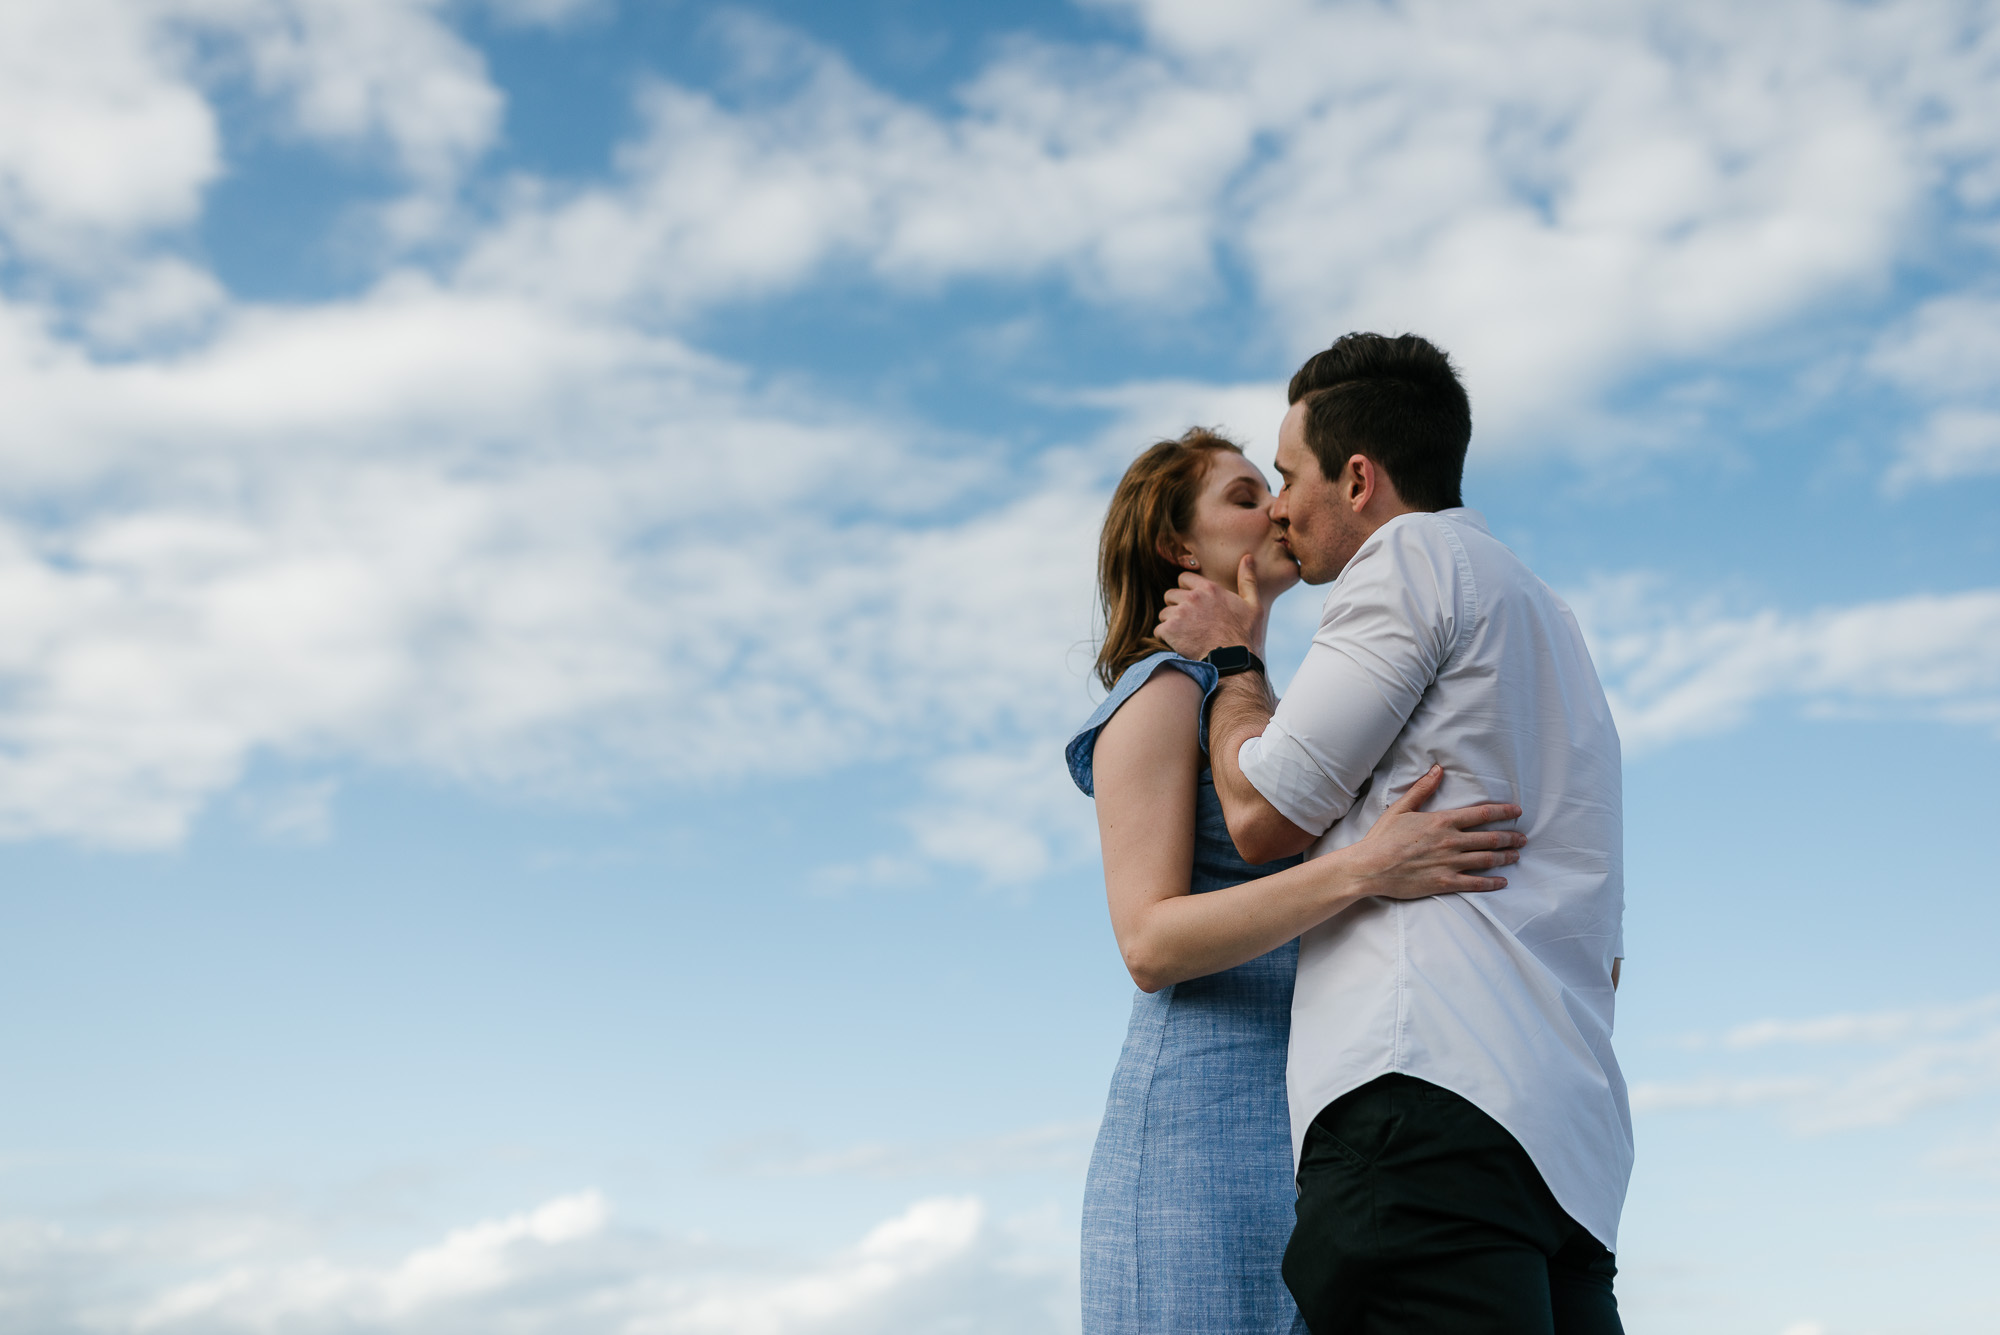 PhotographybyRenata_Proposal_Shoot_Watsons-Bay-Camp_Cove-121.JPG